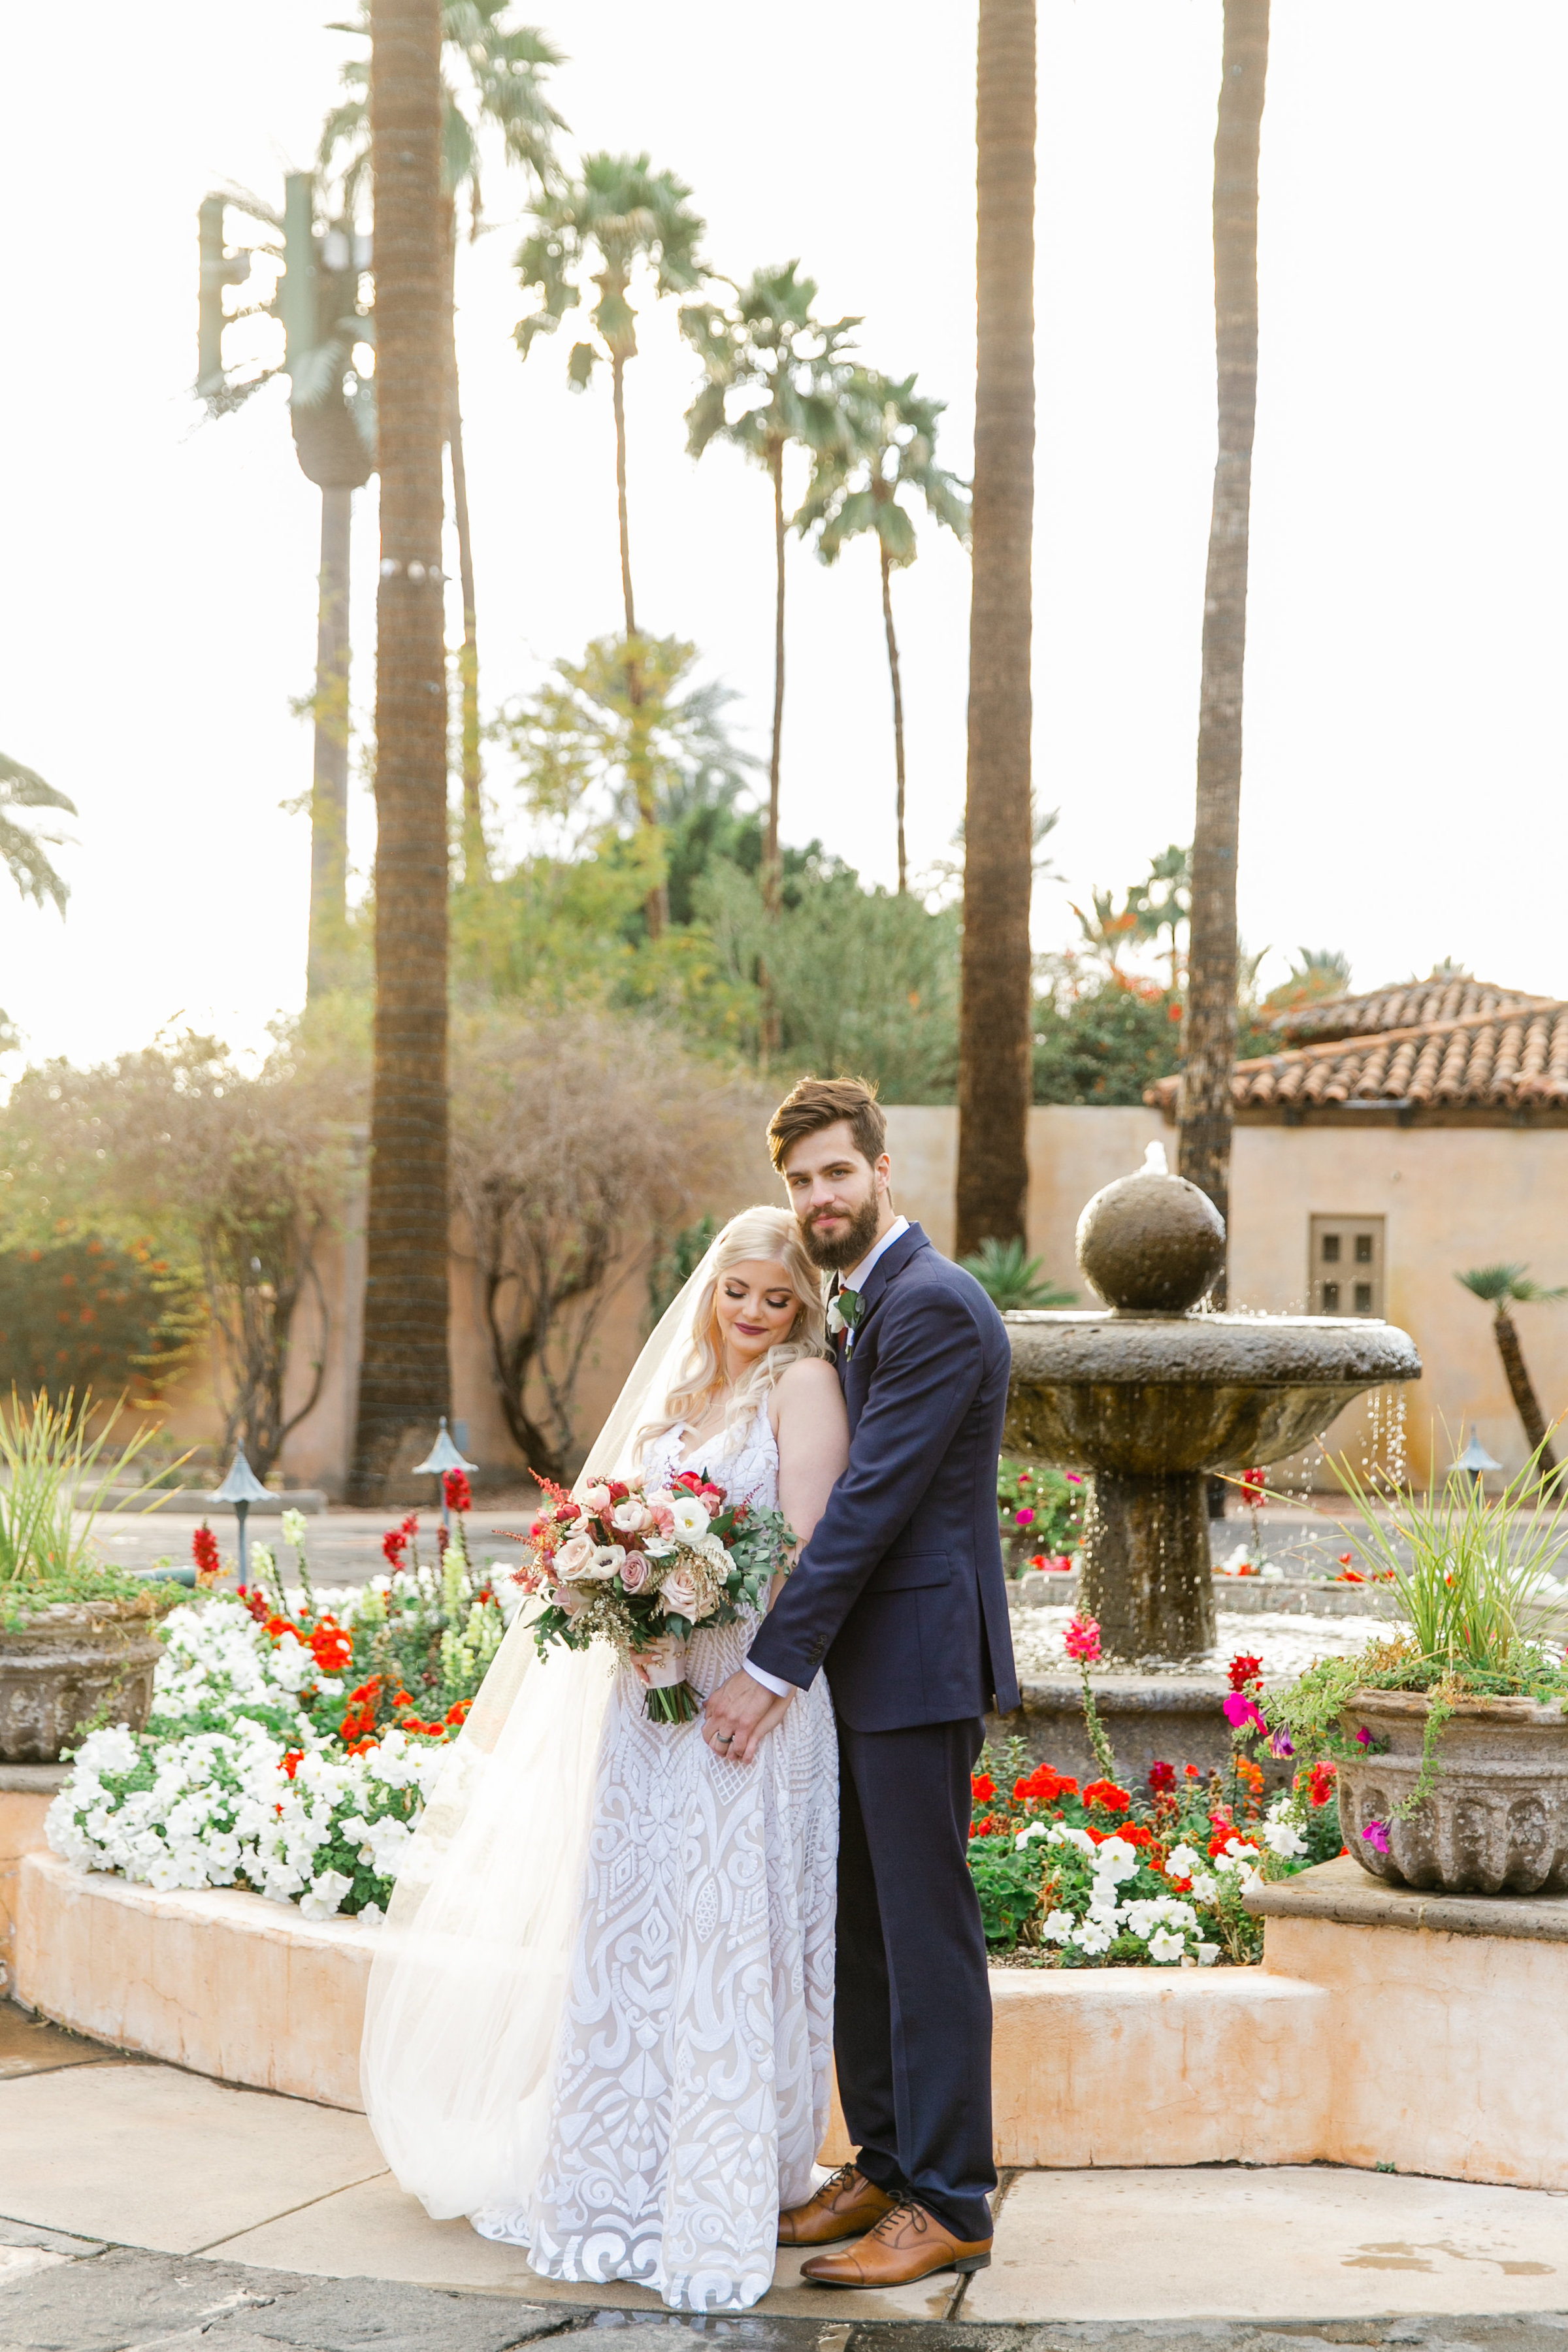 Karlie Colleen Photography - The Royal Palms Wedding - Some Like It Classic - Alex & Sam-540